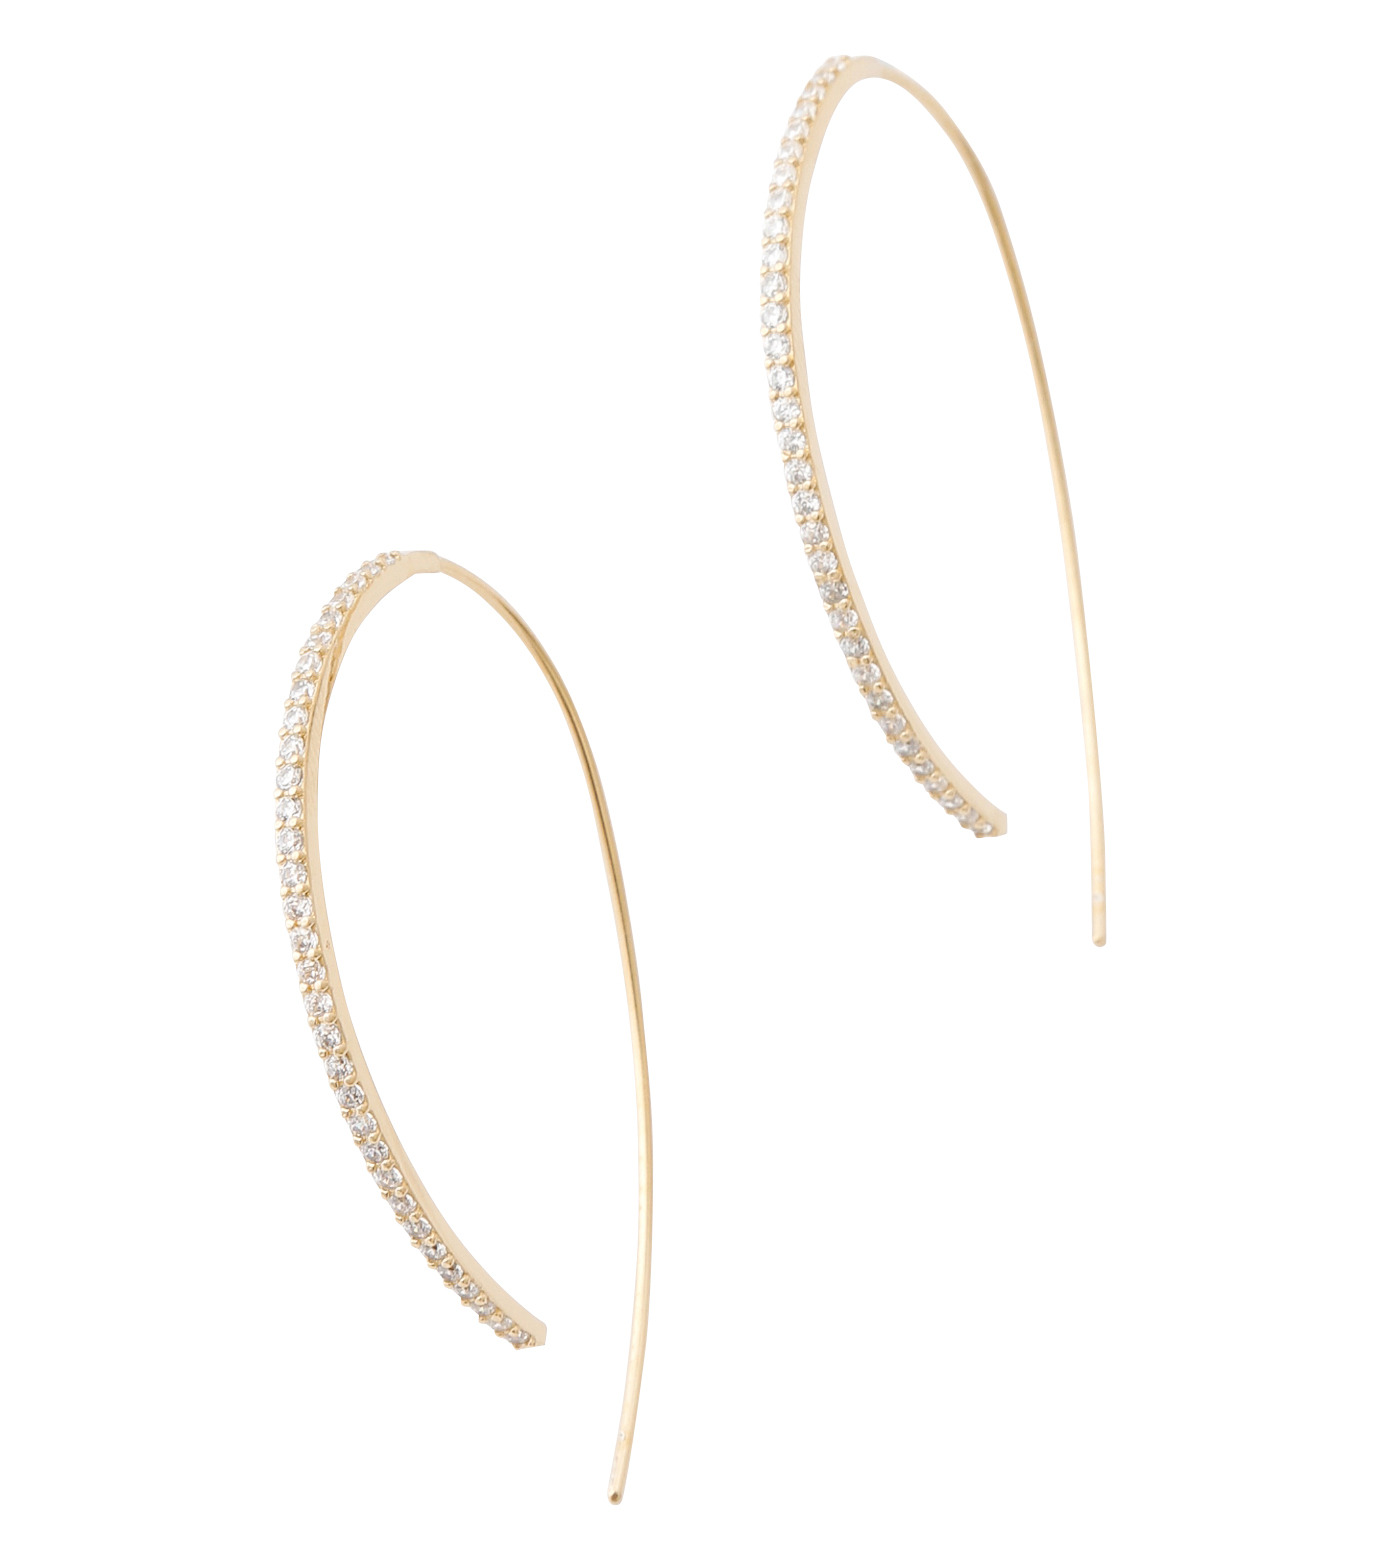 Fallon(ファロン)のPave Threaded Hoops-GOLD-FE11626-2 拡大詳細画像2